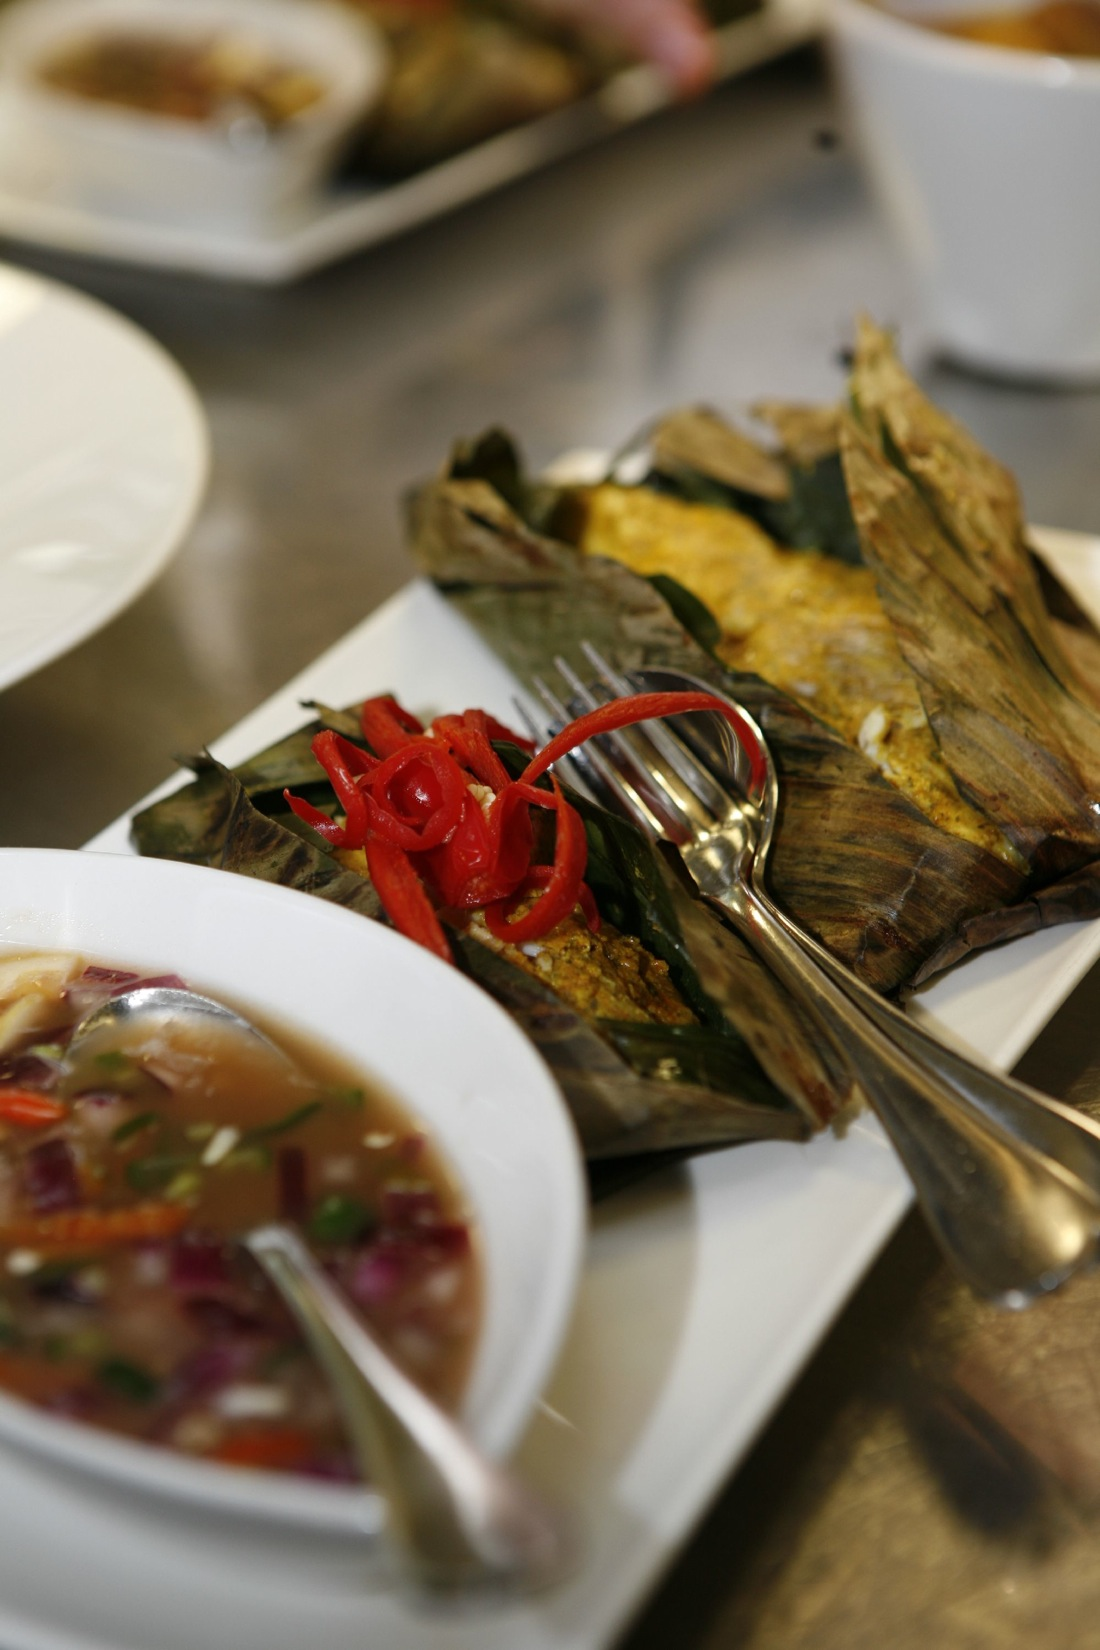 Grilled Snapper in banana leaf (Malaysian recipe)